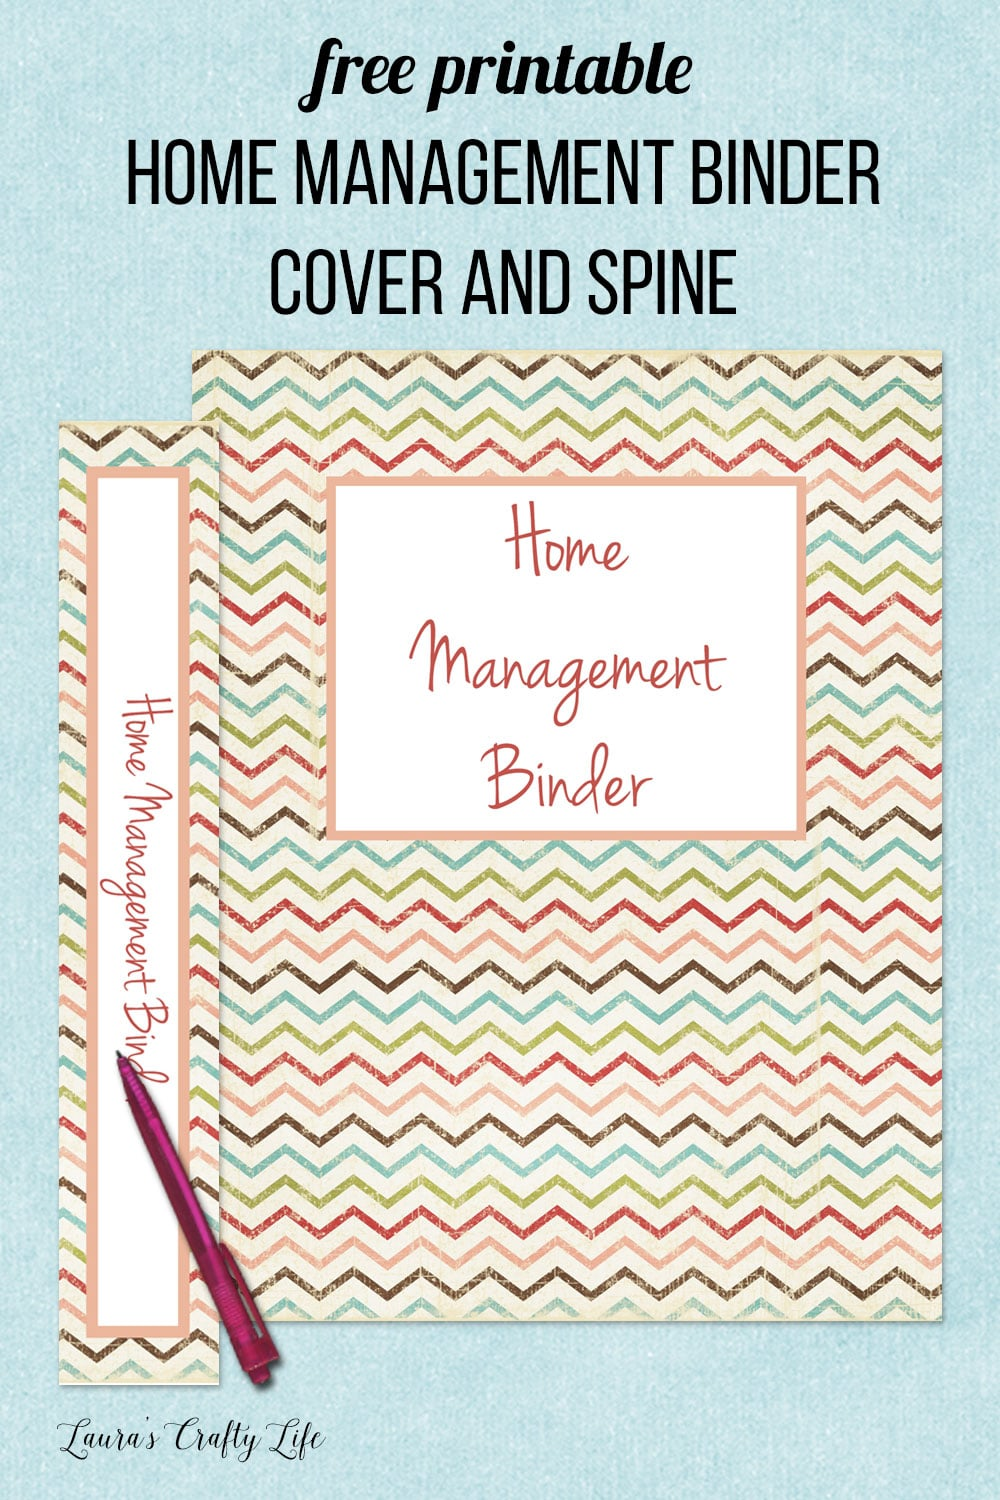 free printable home management binder cover and spine